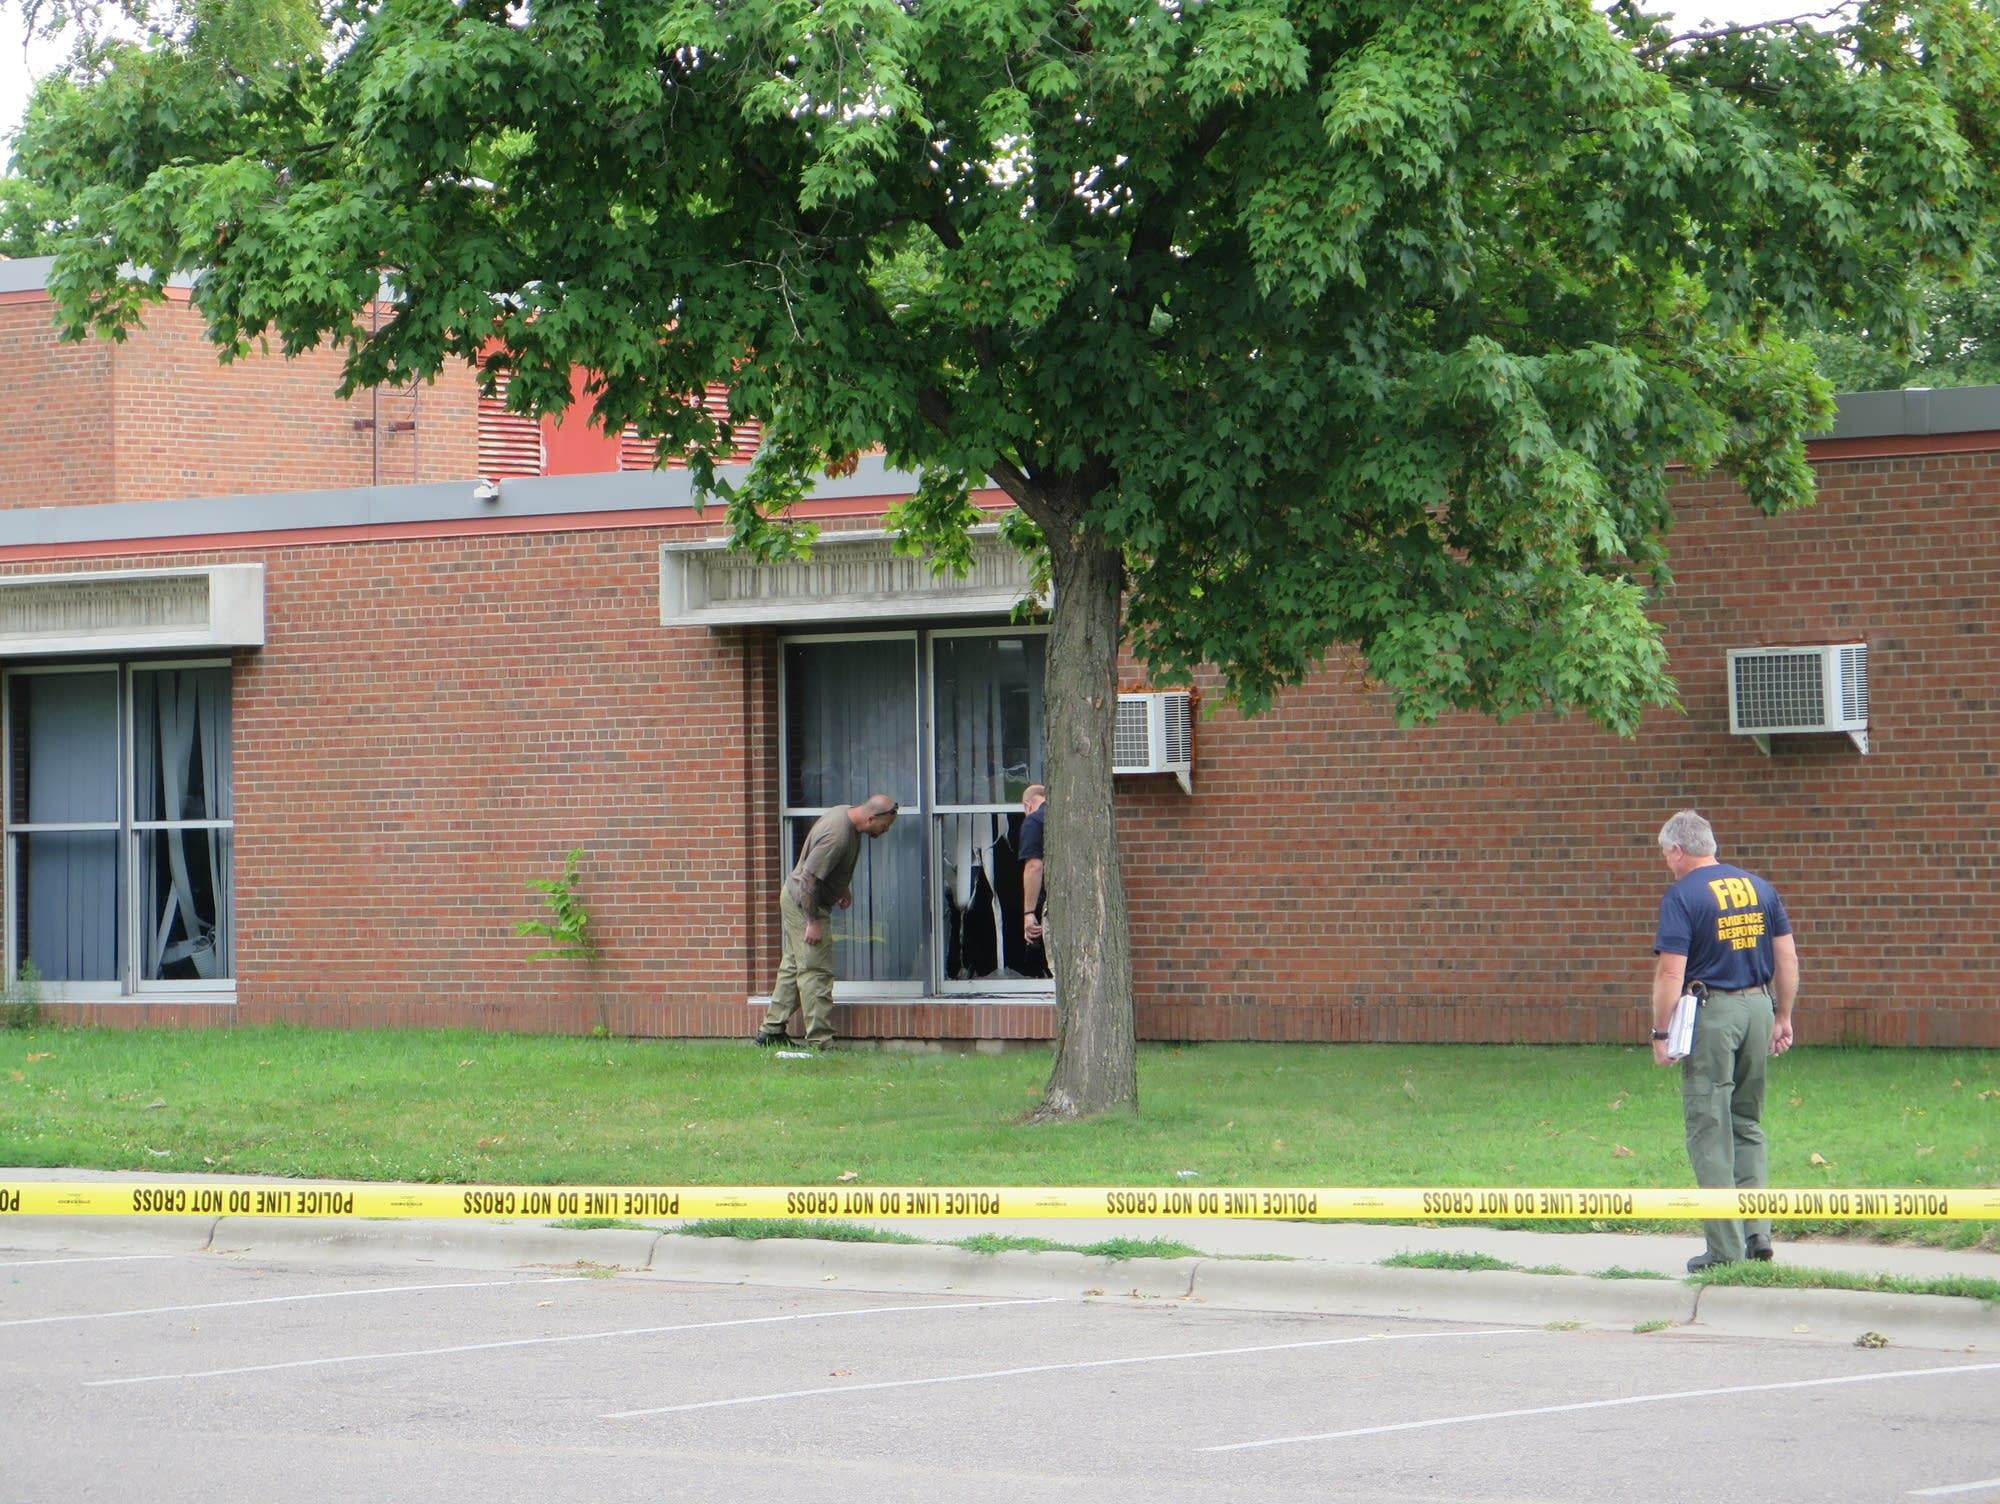 Police investigating explosion at Islamic center in Minnesota